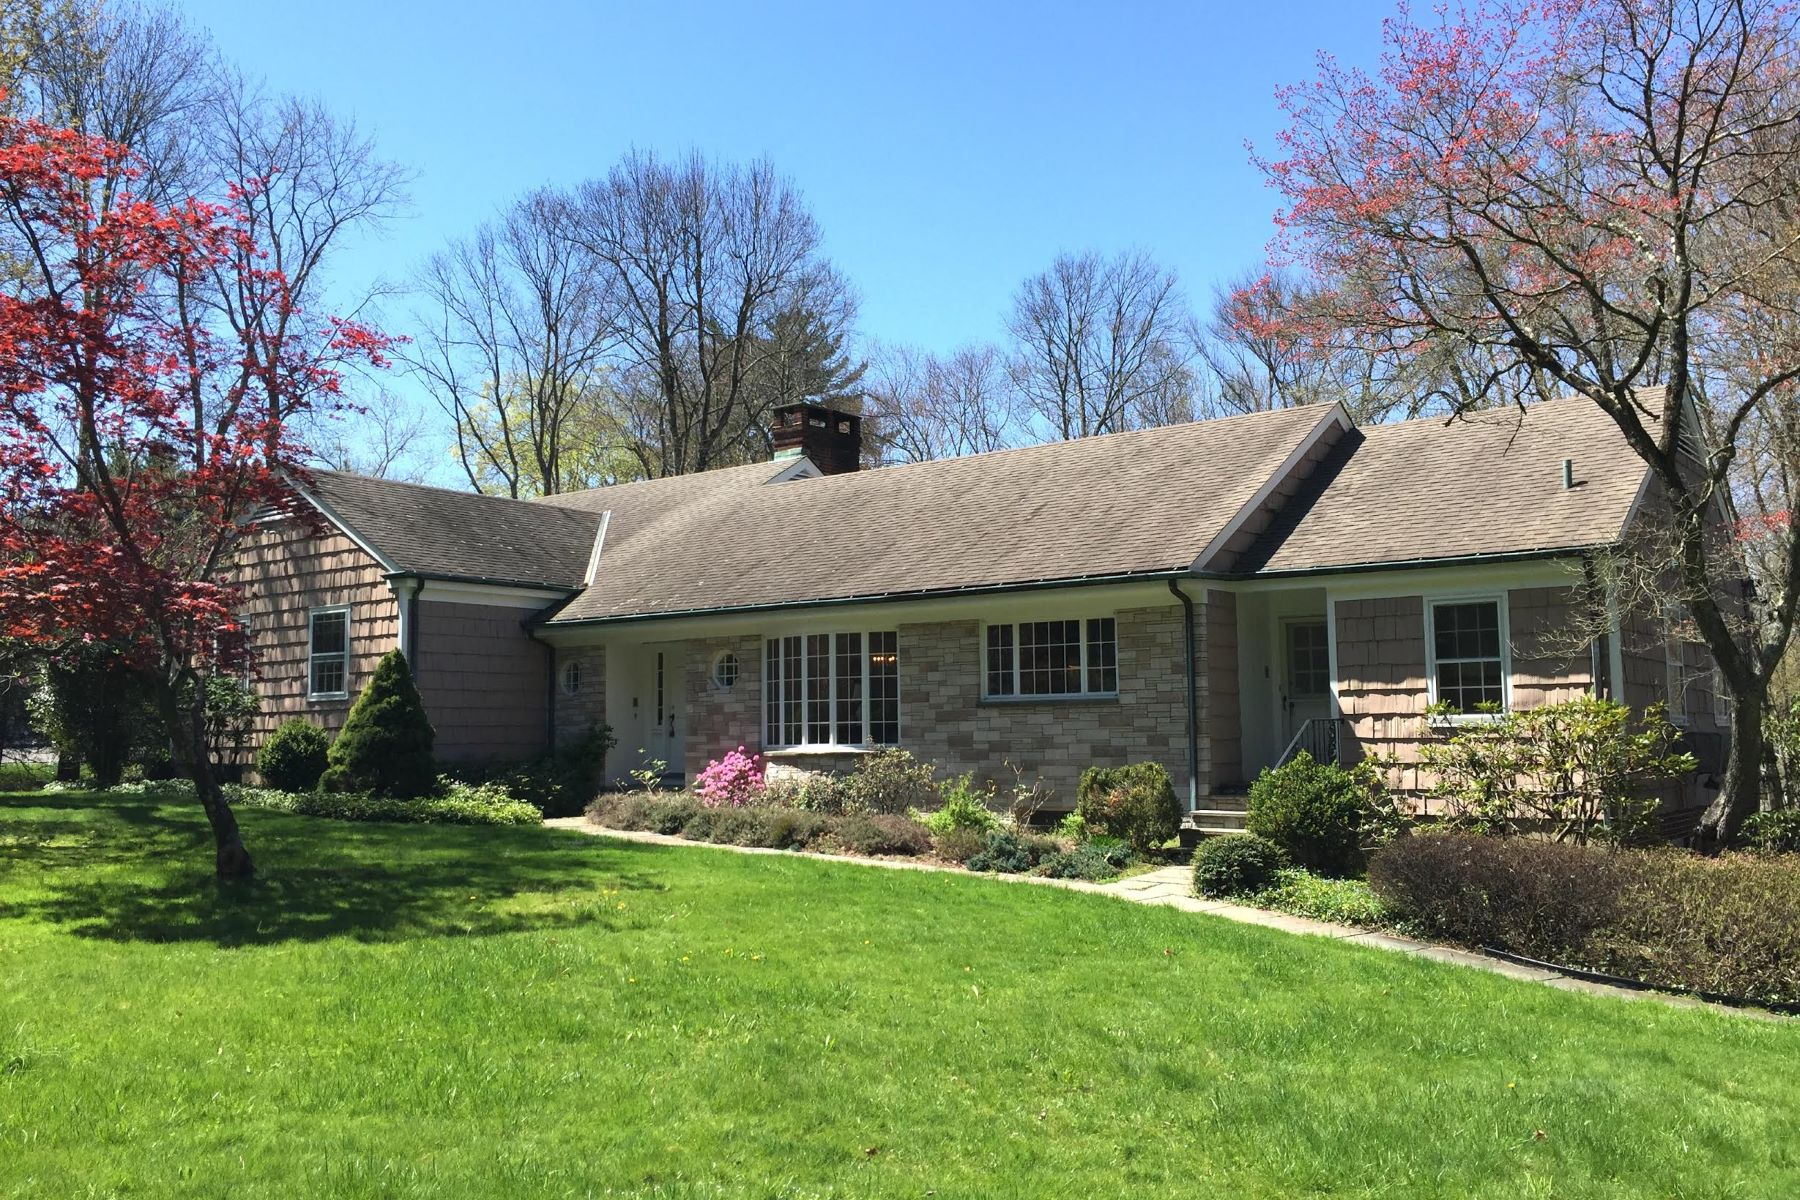 Single Family Home for Sale at Rare Opportunity 397 Middlesex Road, Darien, Connecticut, 06820 United States